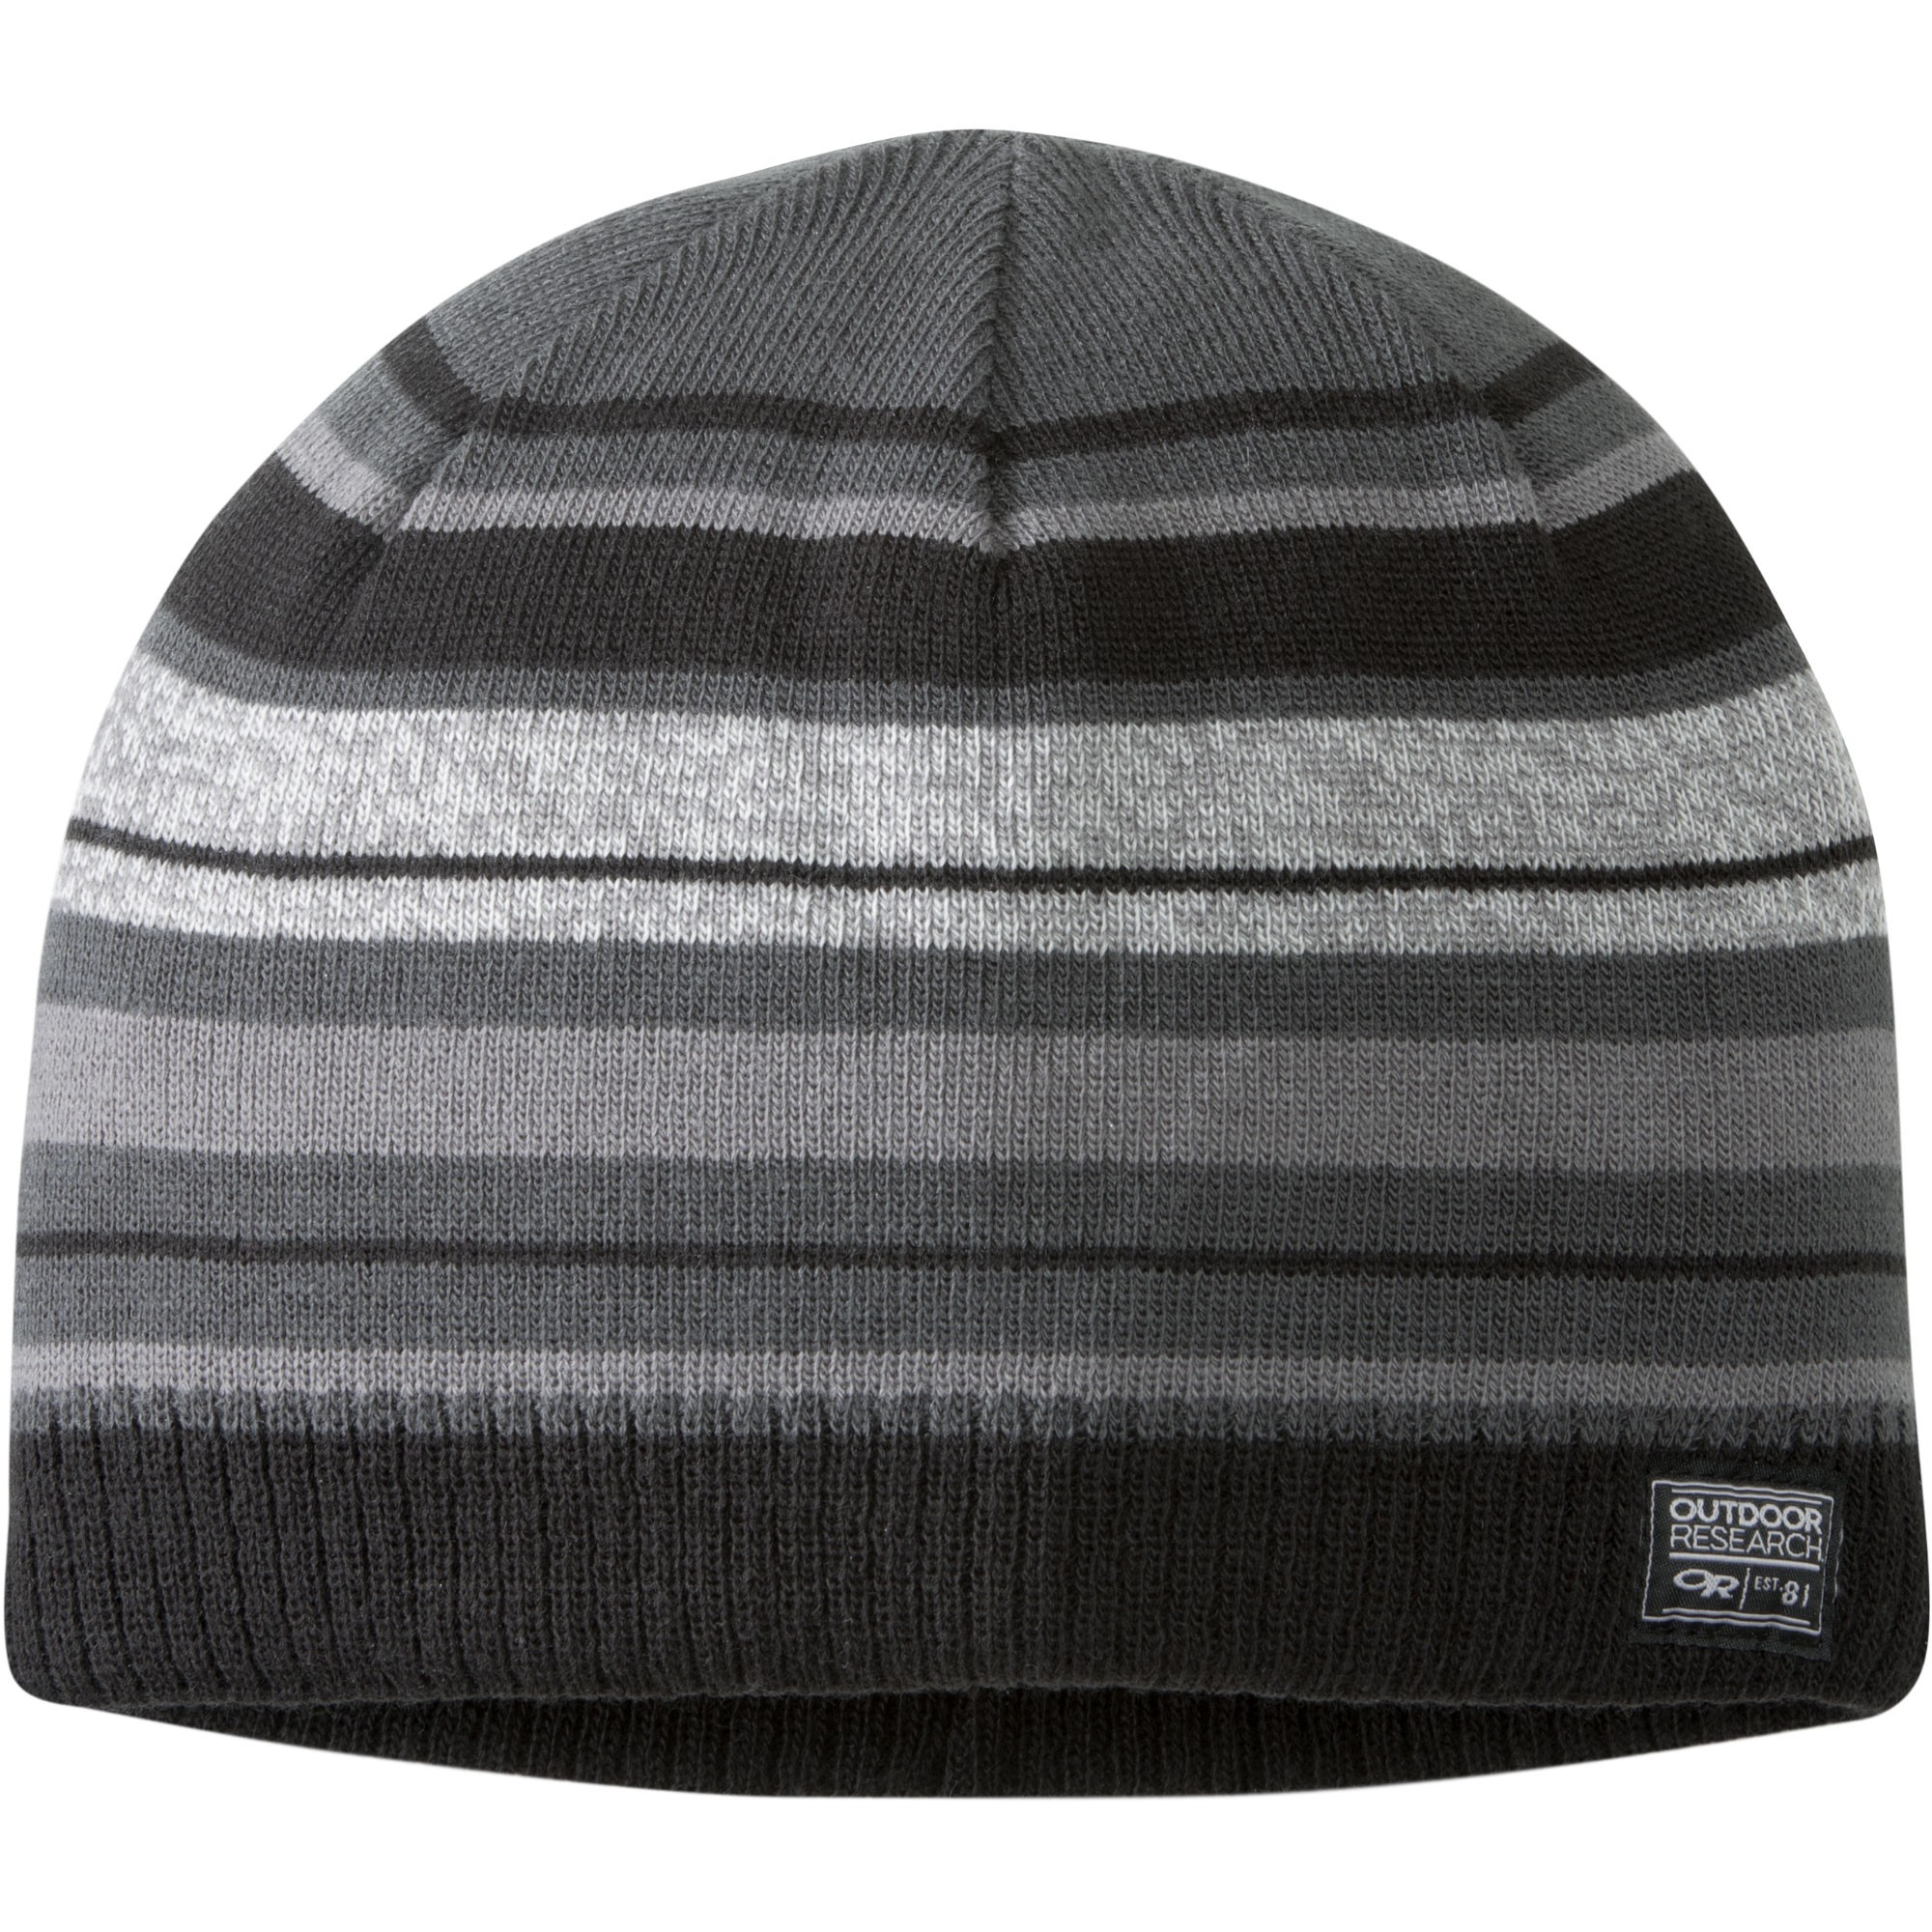 Outdoor-Research-Baseline-Beanie-Black-Charcoal-W17